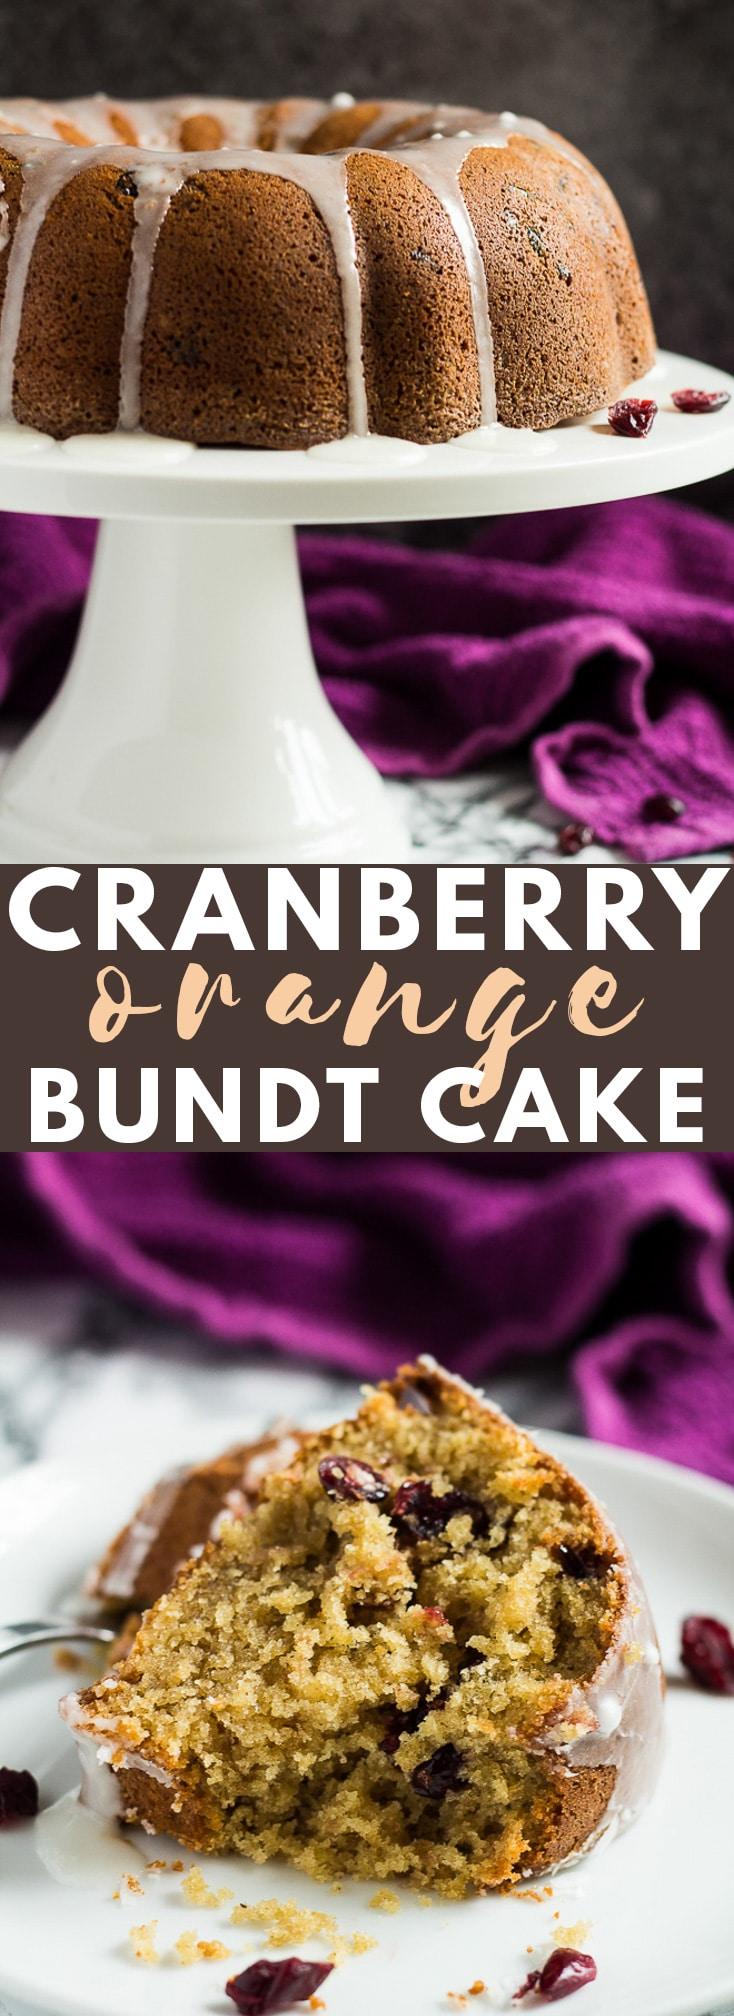 Cranberry Orange Bundt Cake - A deliciously moist and fluffy cinnamon-spiced, orange-infused bundt cake stuffed full of sweet cranberries, and drizzled with an orange glaze! #cranberry #orange #bundtcake #cakerecipes #christmasrecipes